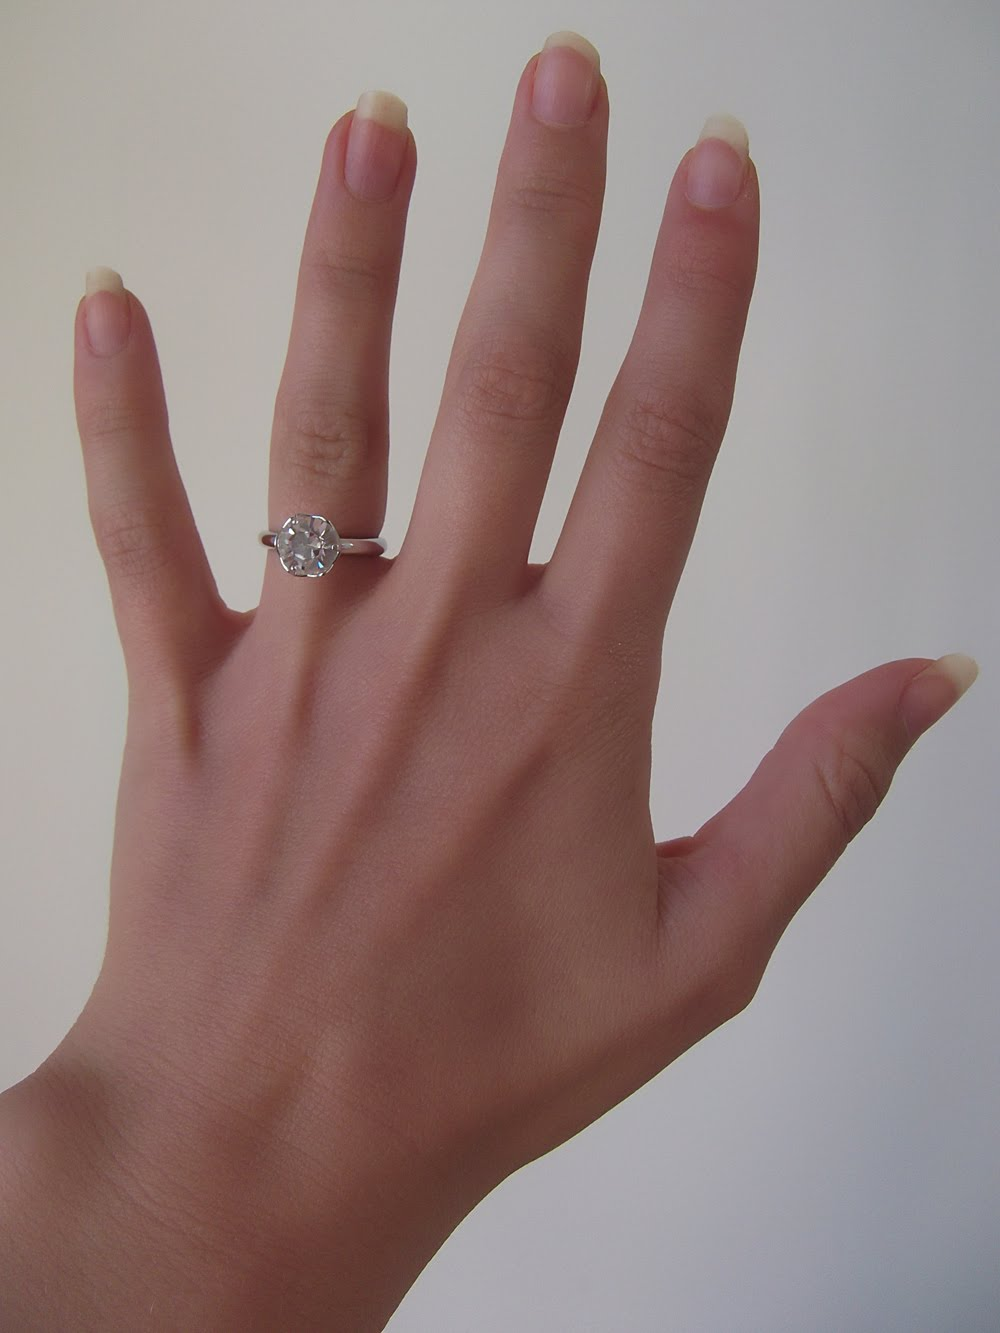 where does the wedding ring go hd photo - Where Does The Wedding Ring Go